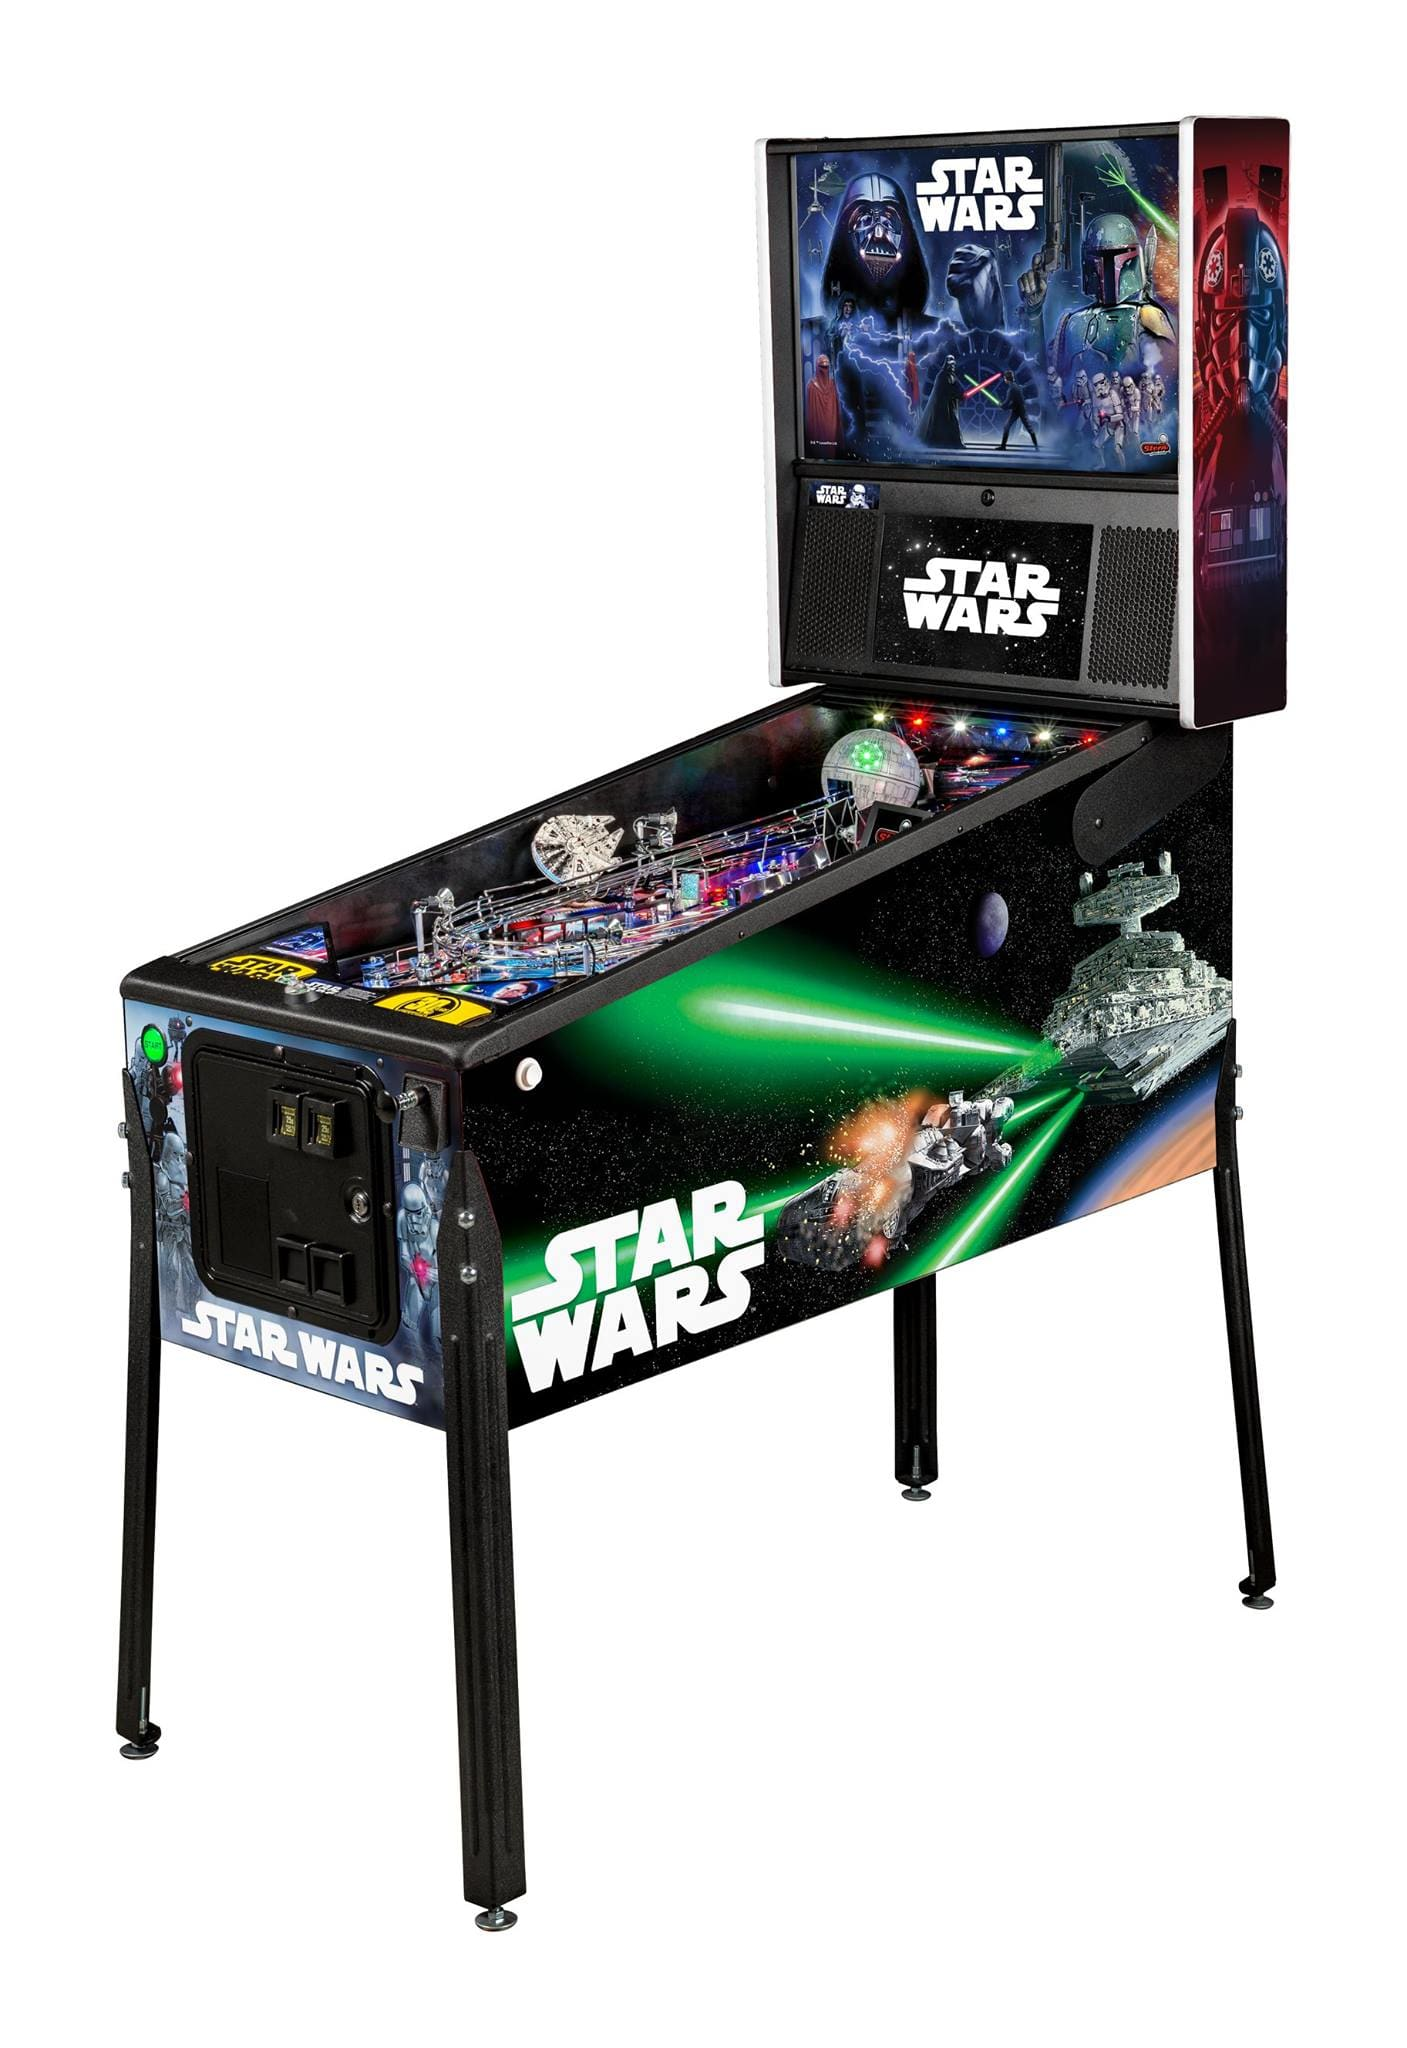 An image of Star Wars Premium Pinball Machine